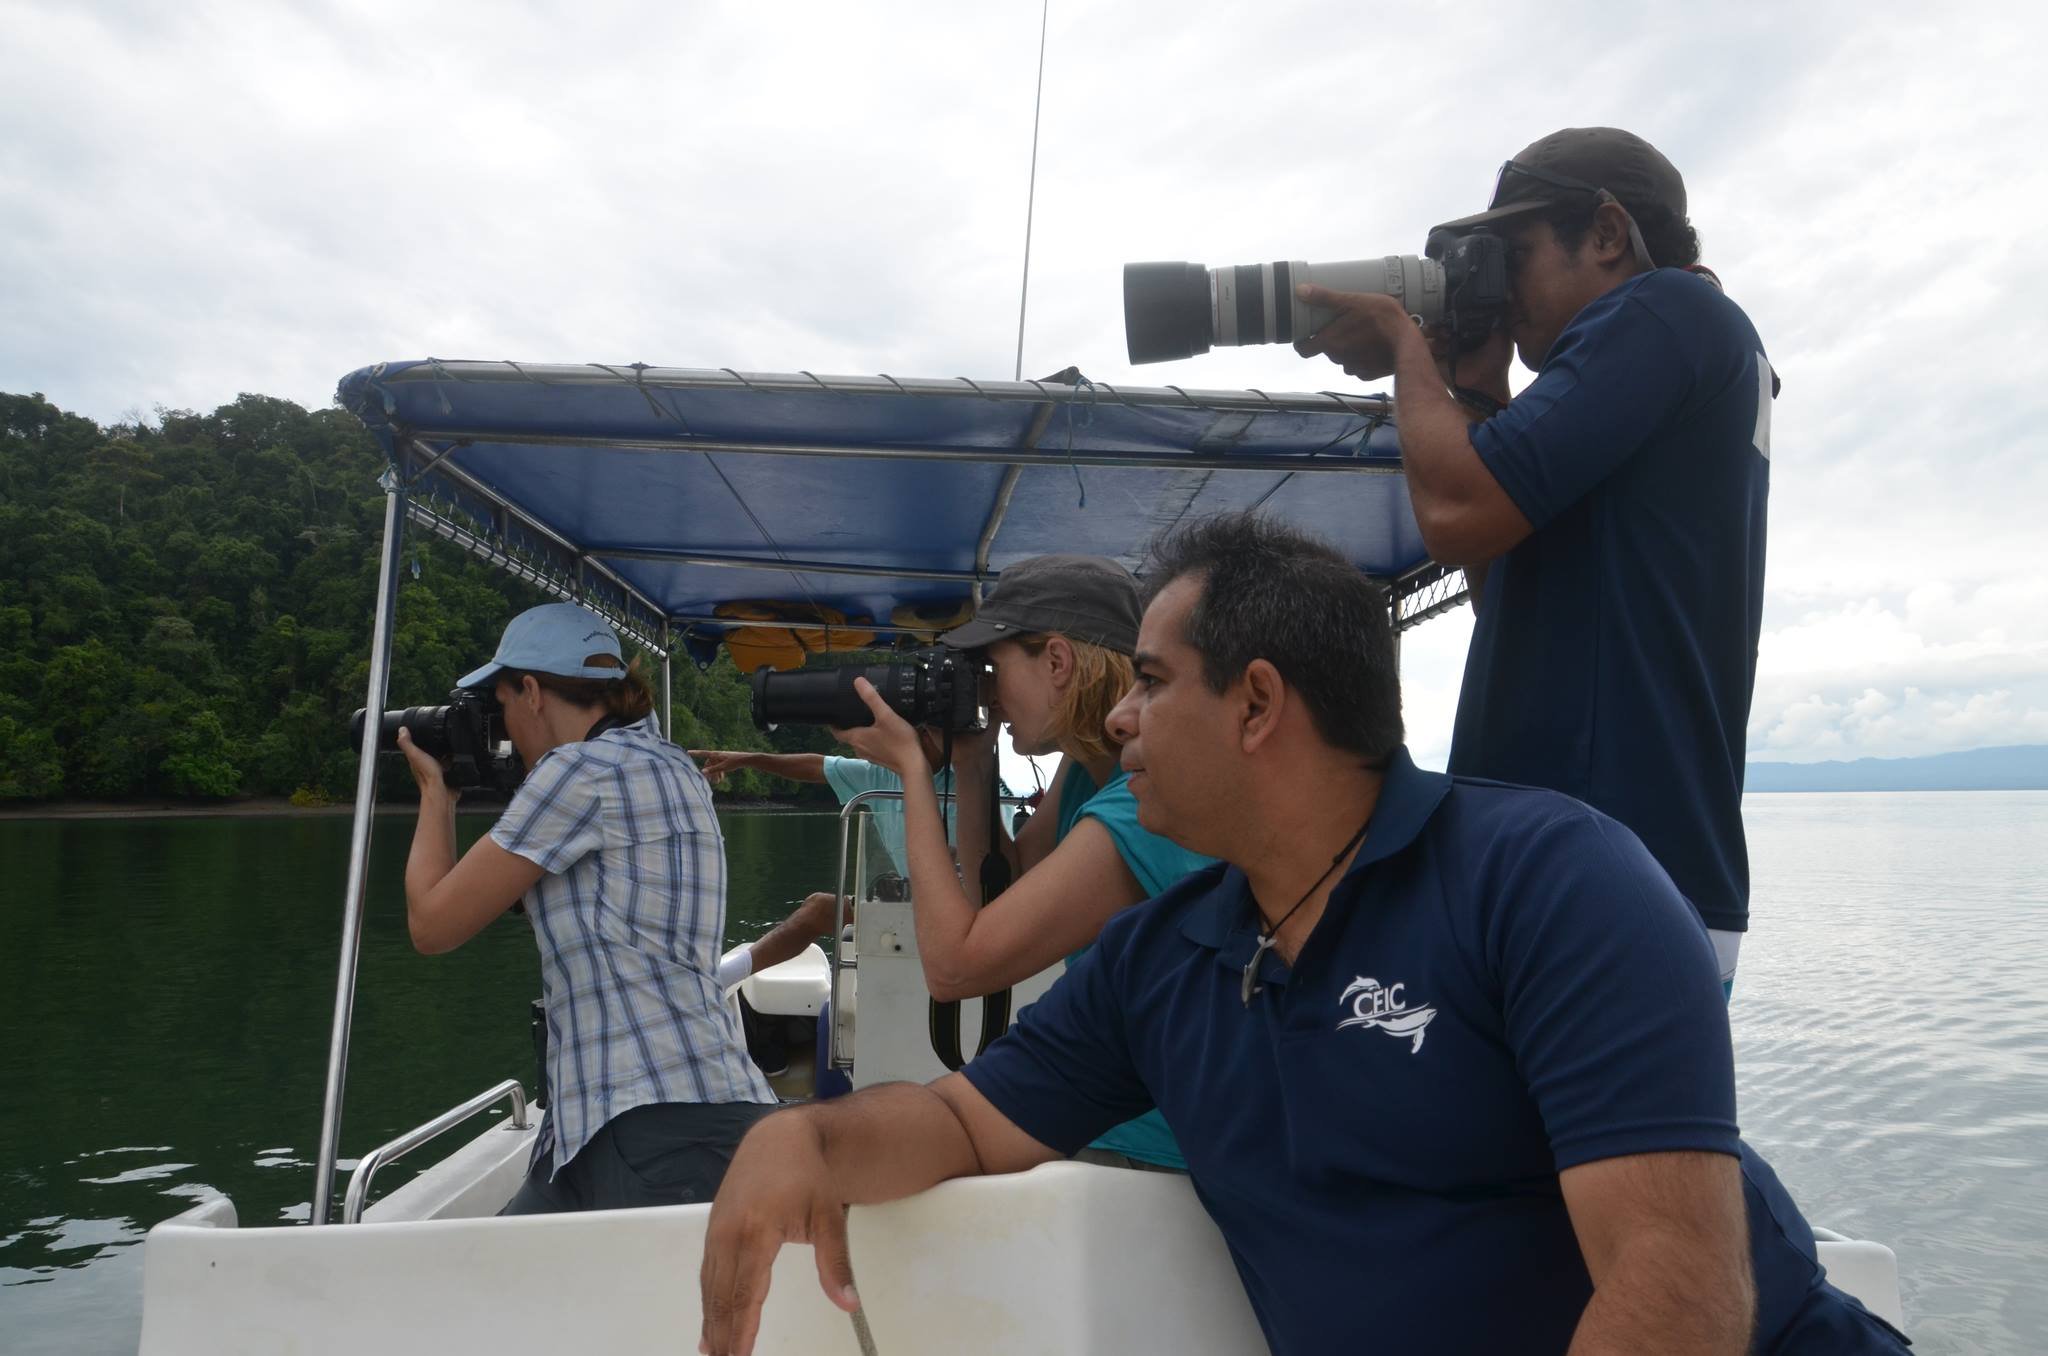 CEIC researchers and Reefs to Rockies co-founders observing bottlenose dolphins feeding in Golfo Dulce.